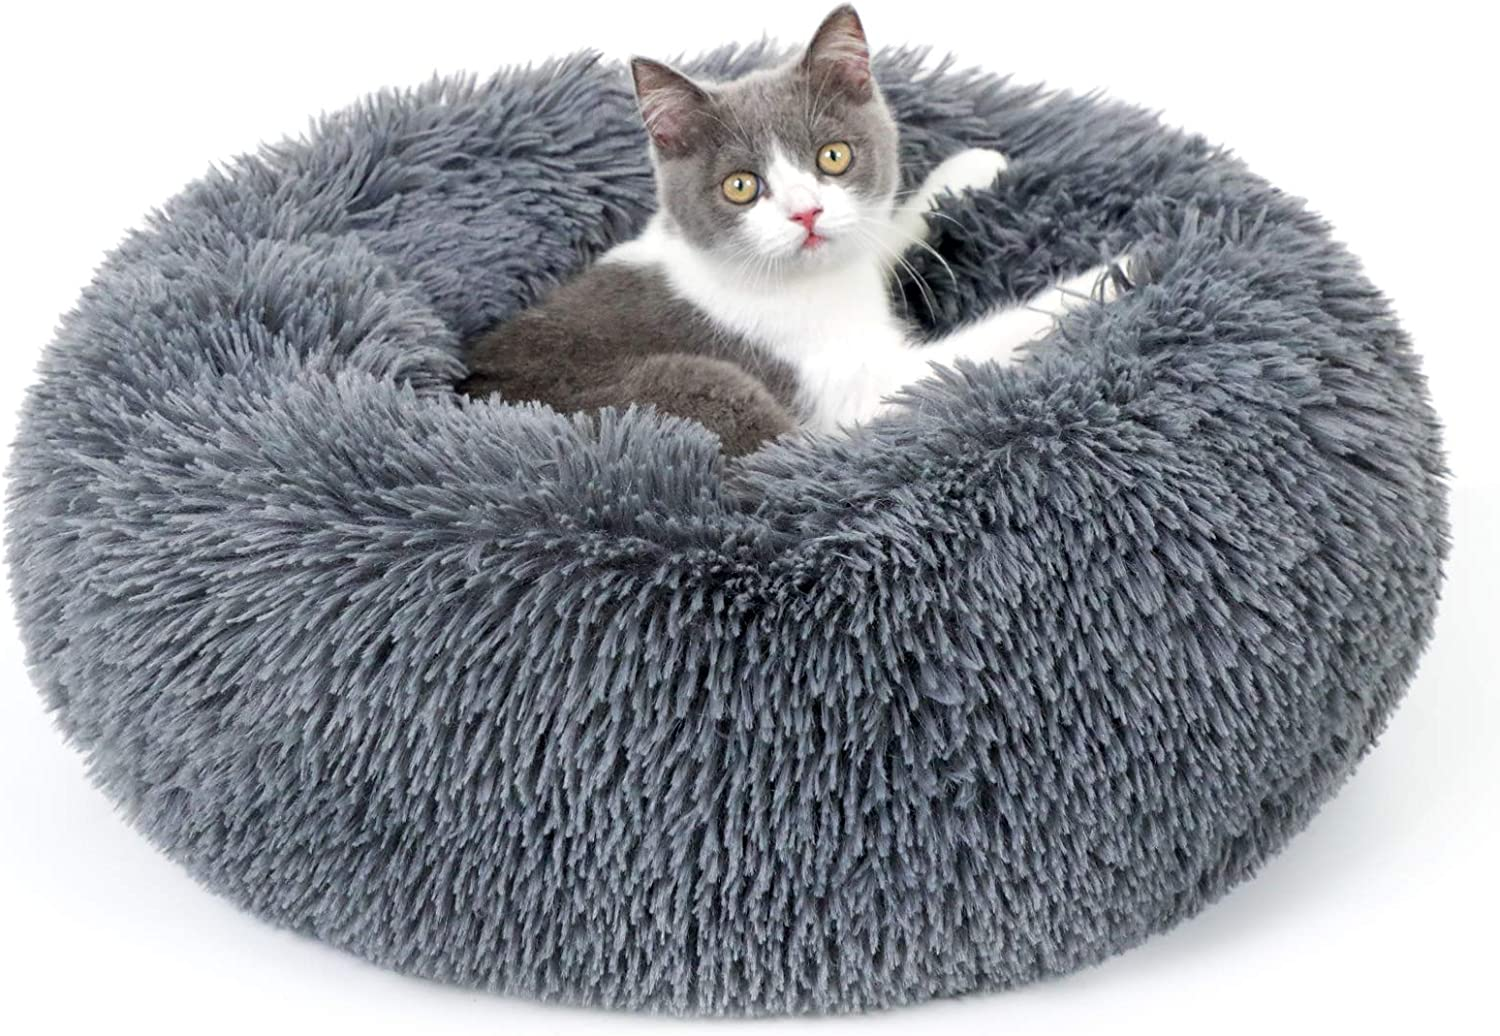 rabbitgoo Cat Bed for Indoor Cats, Fluffy Round Cat Bed for Small Dogs Kittens, Self Warming Calming Bed for Improved Sleep, Soft Plush Donut Cuddler Cushion Pet Bed, Non-Slip, Machine Washable